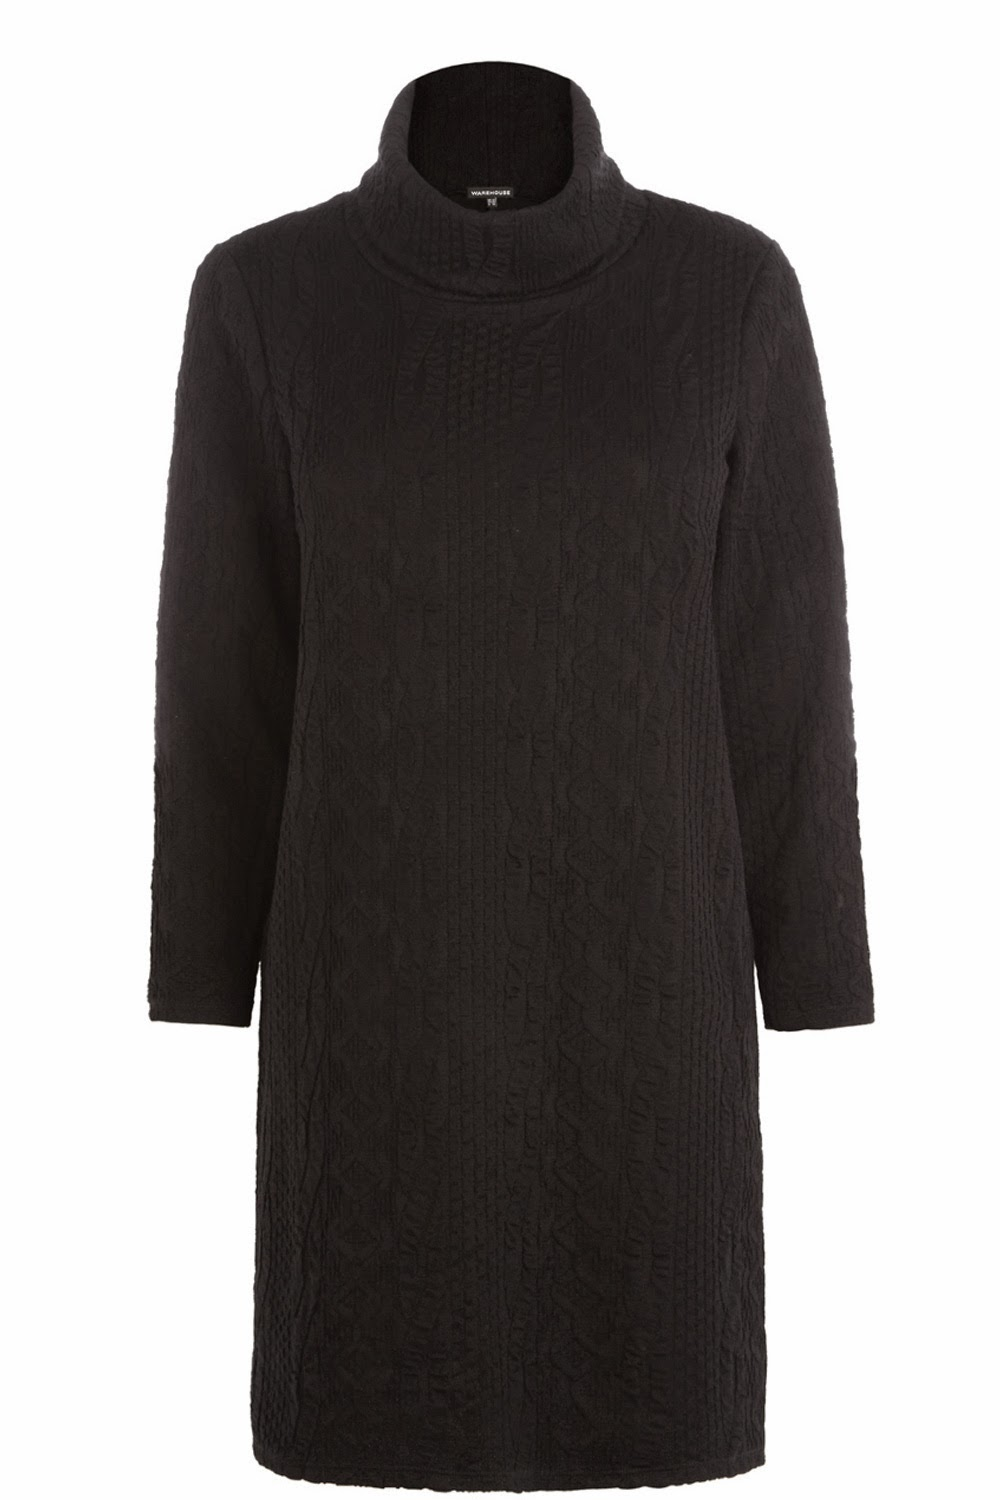 warehouse jumper dress